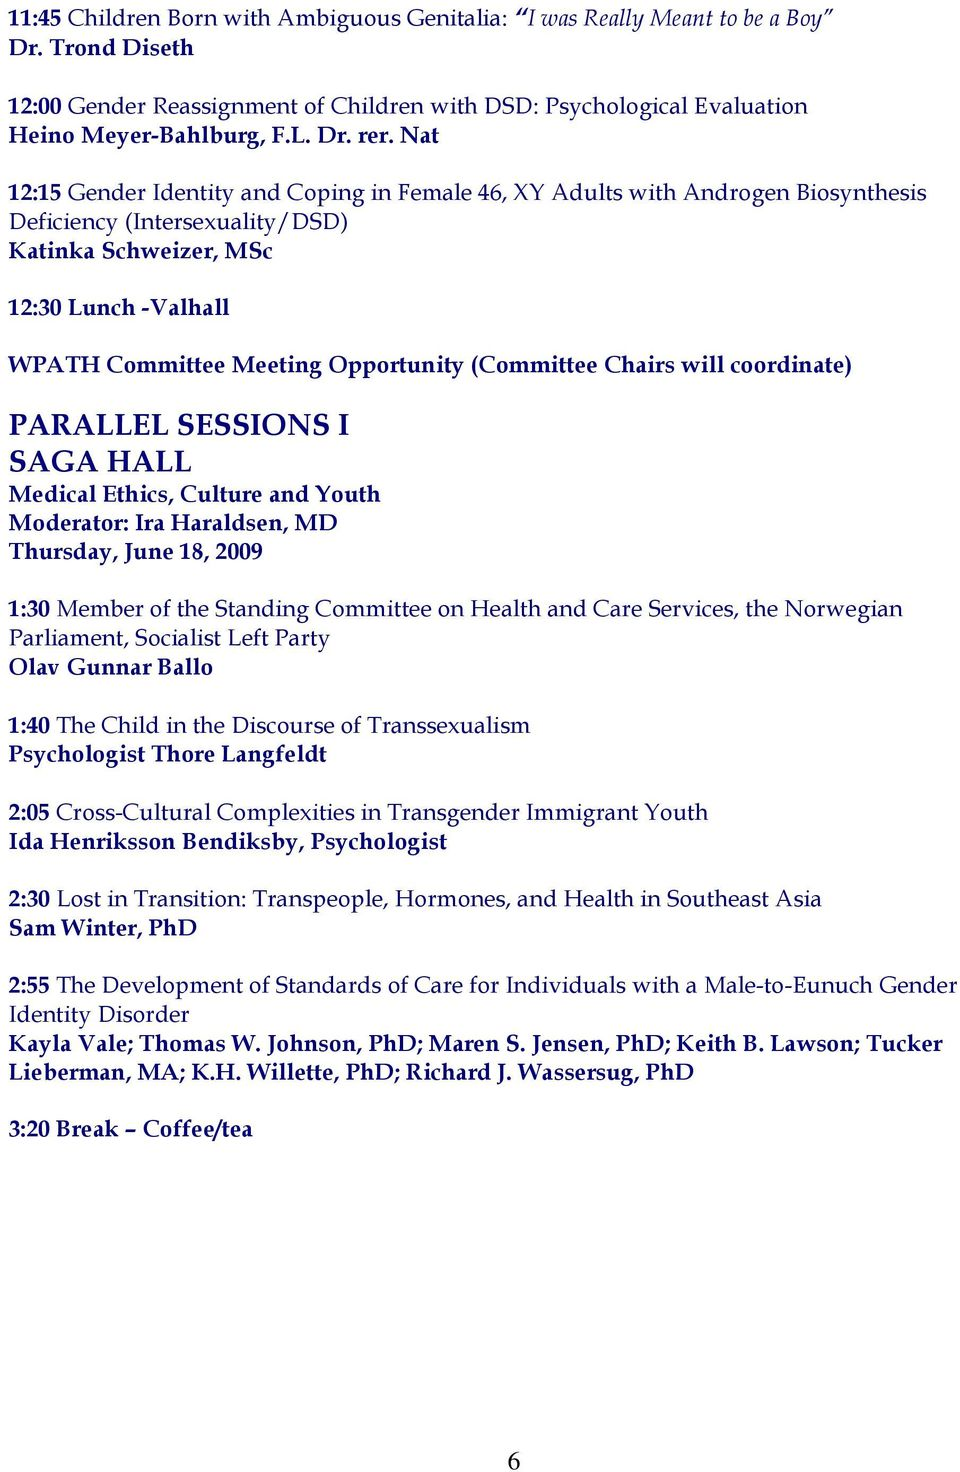 (Committee Chairs will coordinate) PARALLEL SESSIONS I SAGA HALL Medical Ethics, Culture and Youth Moderator: Ira Haraldsen, MD 1:30 Member of the Standing Committee on Health and Care Services, the